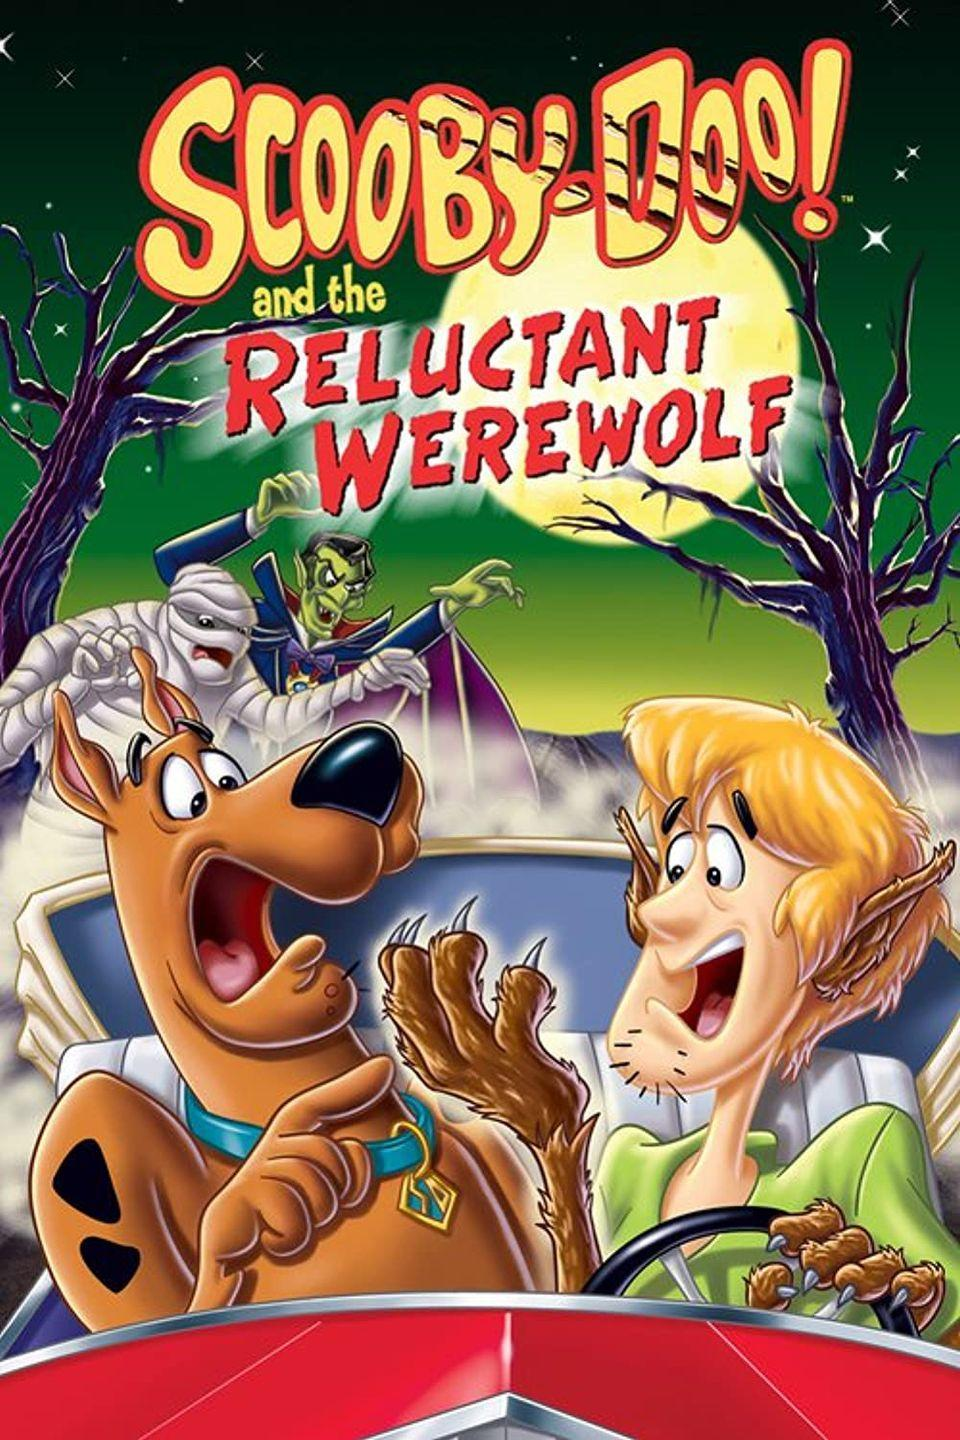 """<p><a class=""""link rapid-noclick-resp"""" href=""""https://www.amazon.com/Scooby-Doo-Reluctant-Werewolf-Hamilton-Camp/dp/B00005UF81?tag=syn-yahoo-20&ascsubtag=%5Bartid%7C10055.g.21987512%5Bsrc%7Cyahoo-us"""" rel=""""nofollow noopener"""" target=""""_blank"""" data-ylk=""""slk:WATCH NOW"""">WATCH NOW</a></p><p>Get Scooby and the gang back together for some kid-friendly fun, solving this mystery on Halloween. Your little monsters will be over the moon for this animated thriller.</p>"""